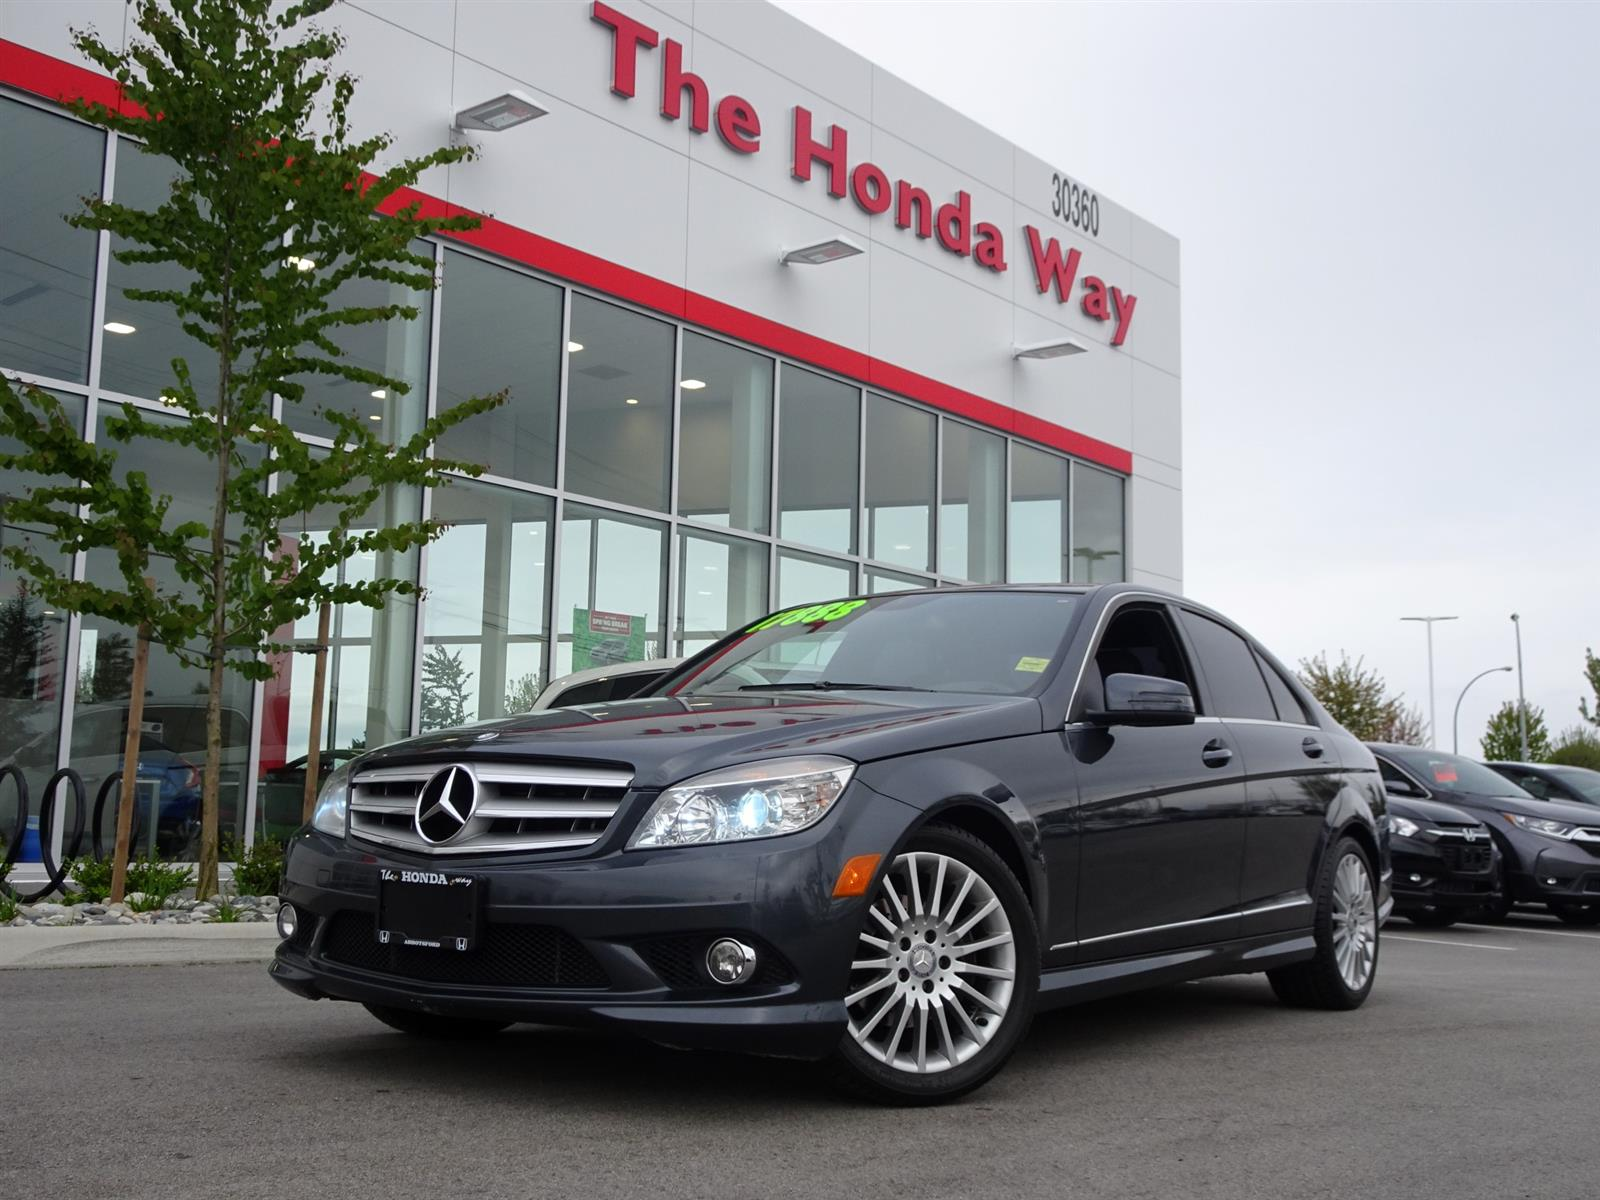 2010 mercedes benz c250 for sale great deals on 2010 for 2010 mercedes benz c250